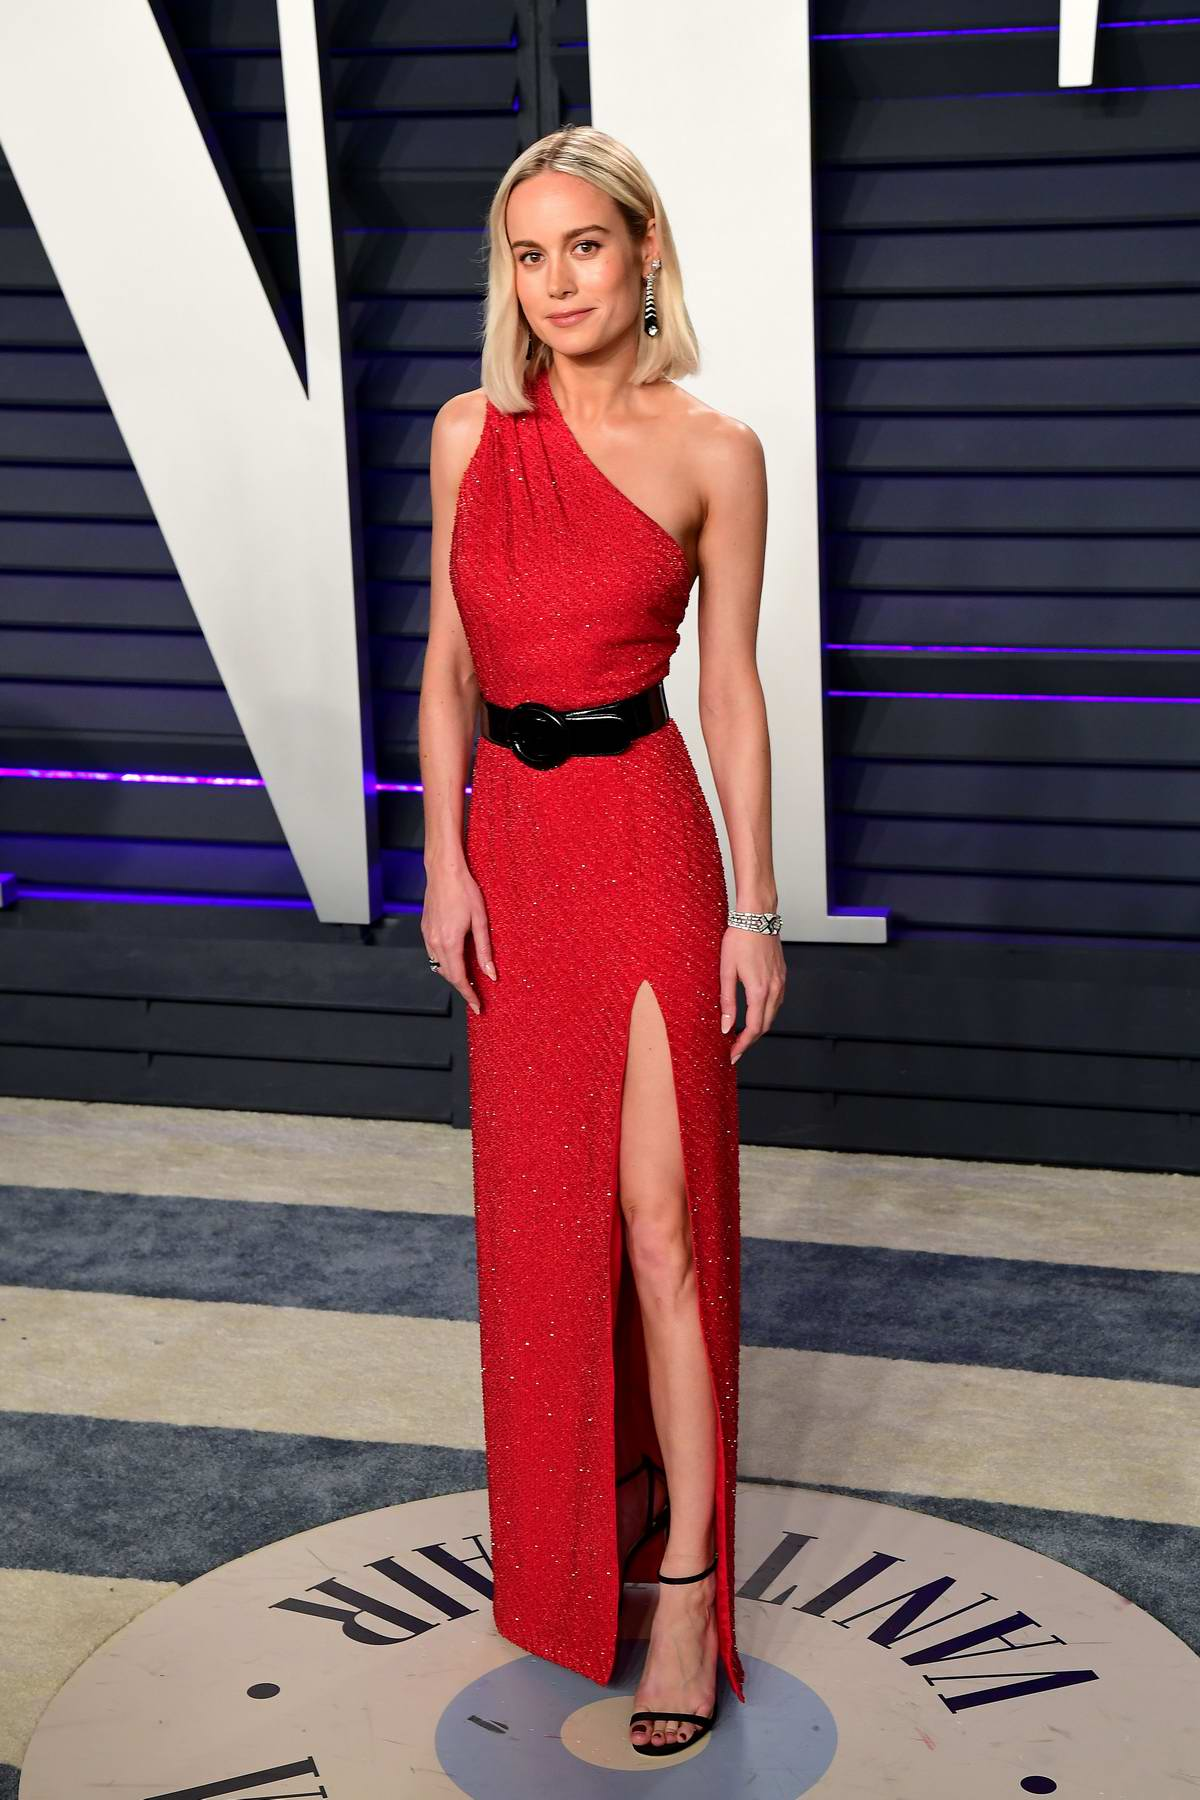 Brie Larson attends the Vanity Fair Oscar Party at Wallis Annenberg Center for the Performing Arts in Beverly Hills, California